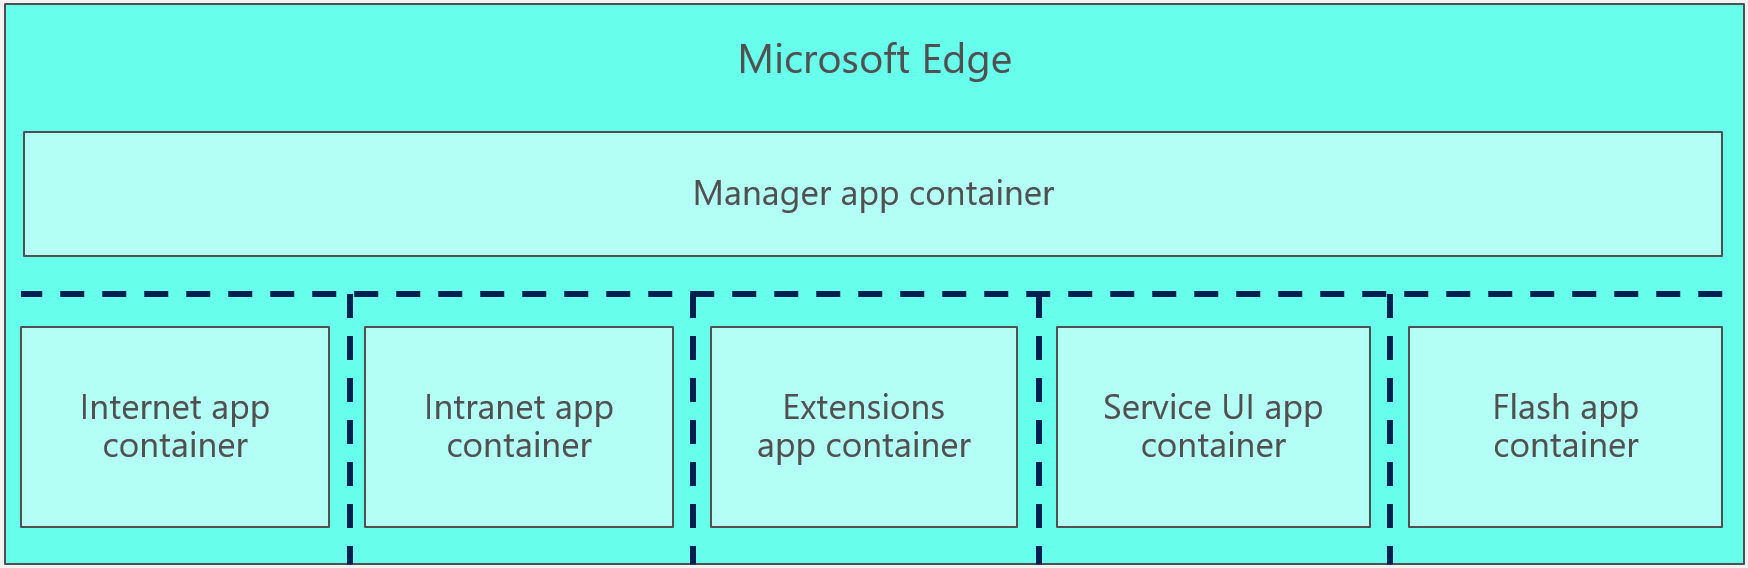 Strengthening the Microsoft Edge Sandbox - Microsoft Edge Blog